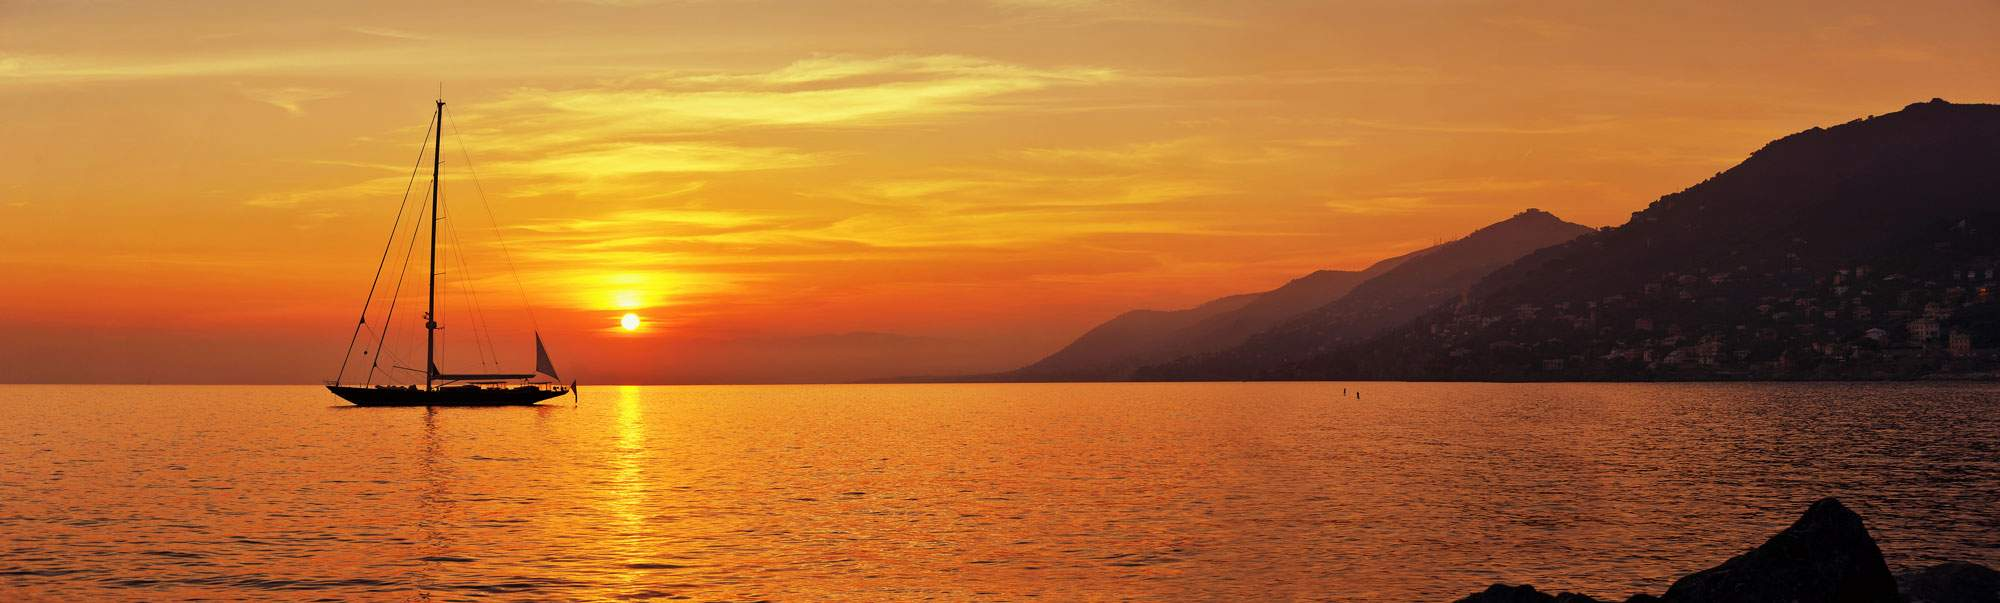 The 5 Best Sunset Spots in Croatia